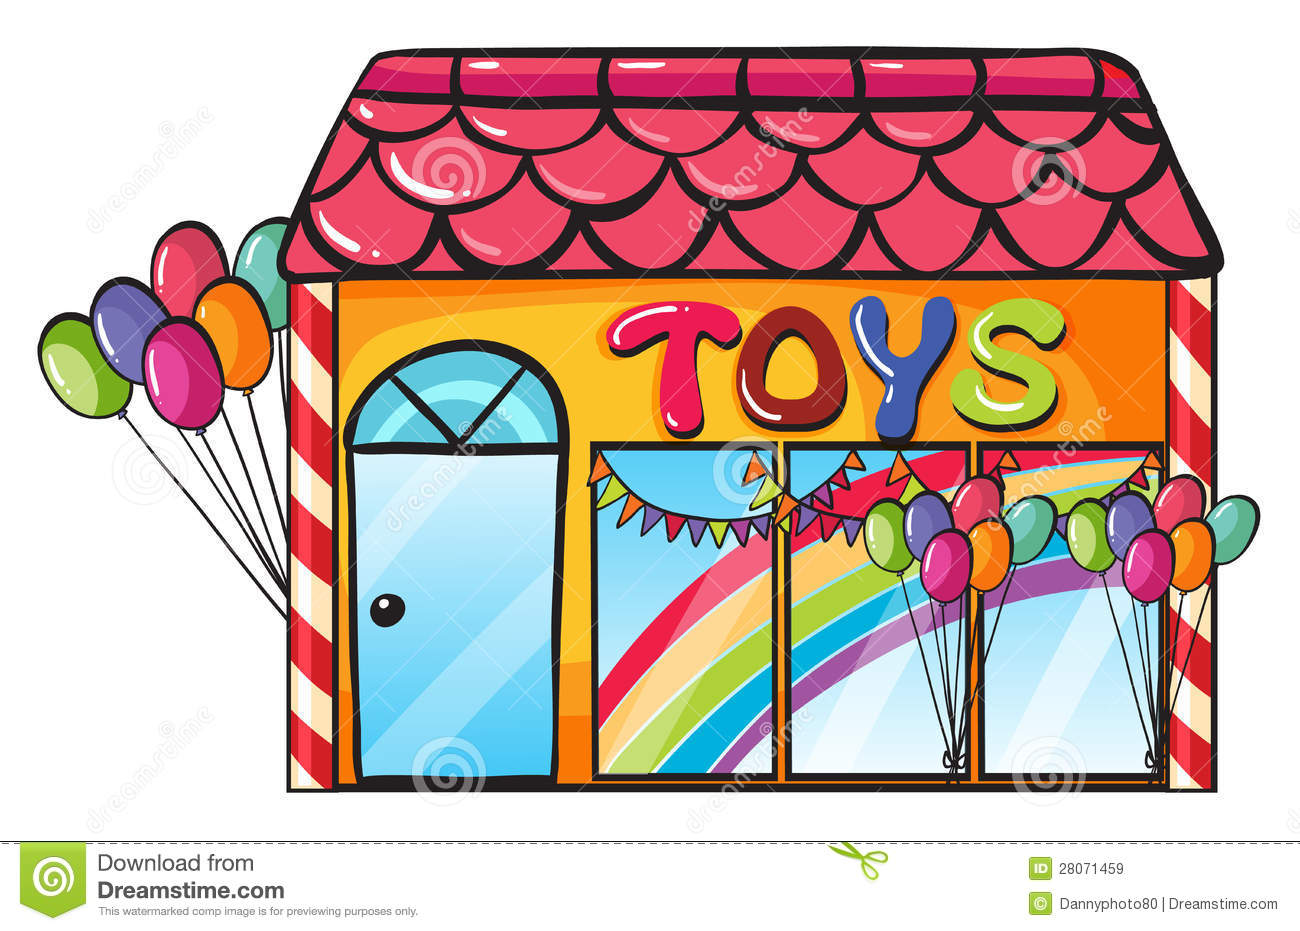 Toy Shop Royalty Free Stock Images - Image: 28071459